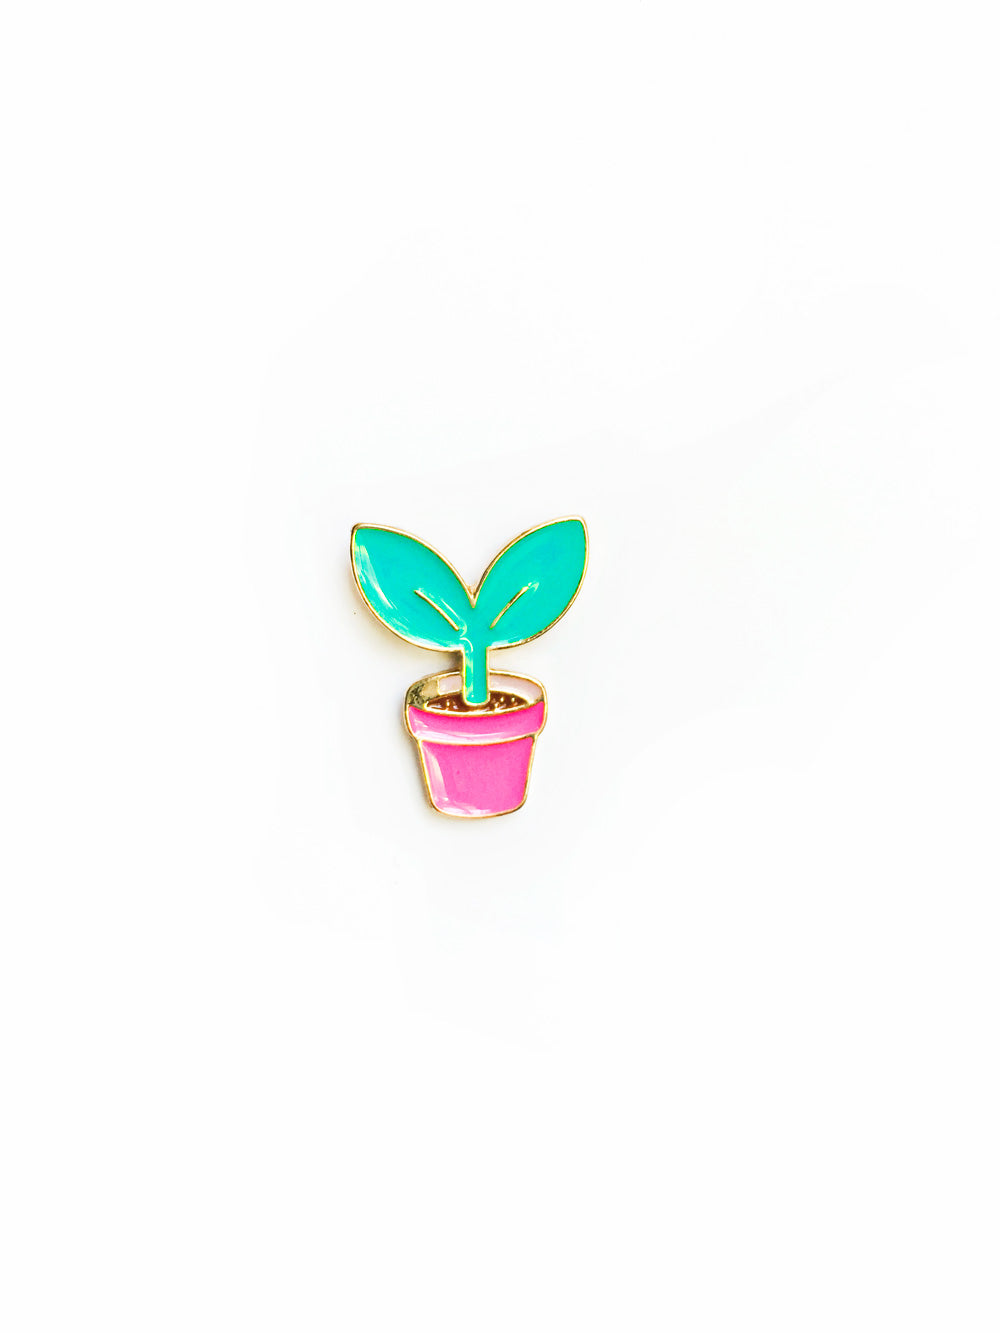 Sprout Enamel Pin